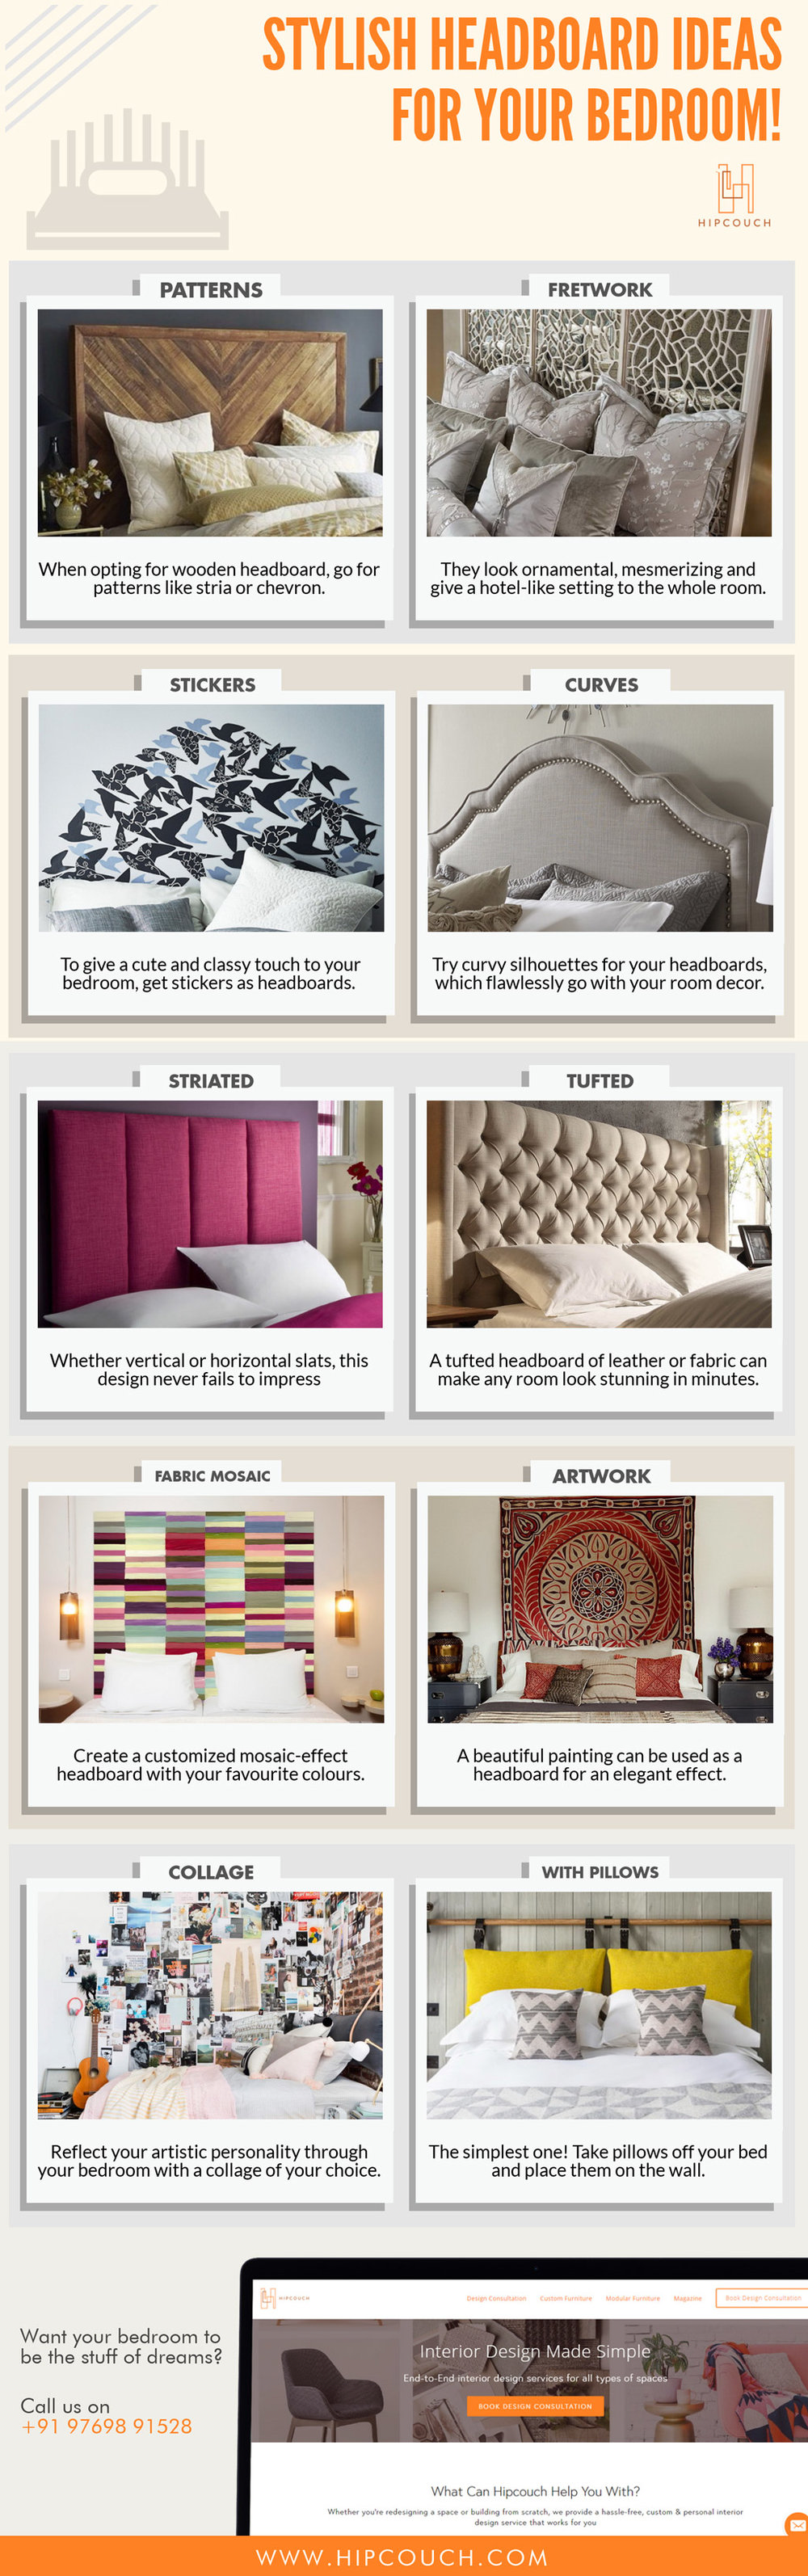 Headboard-Ideas-for-your-bedroom.jpg